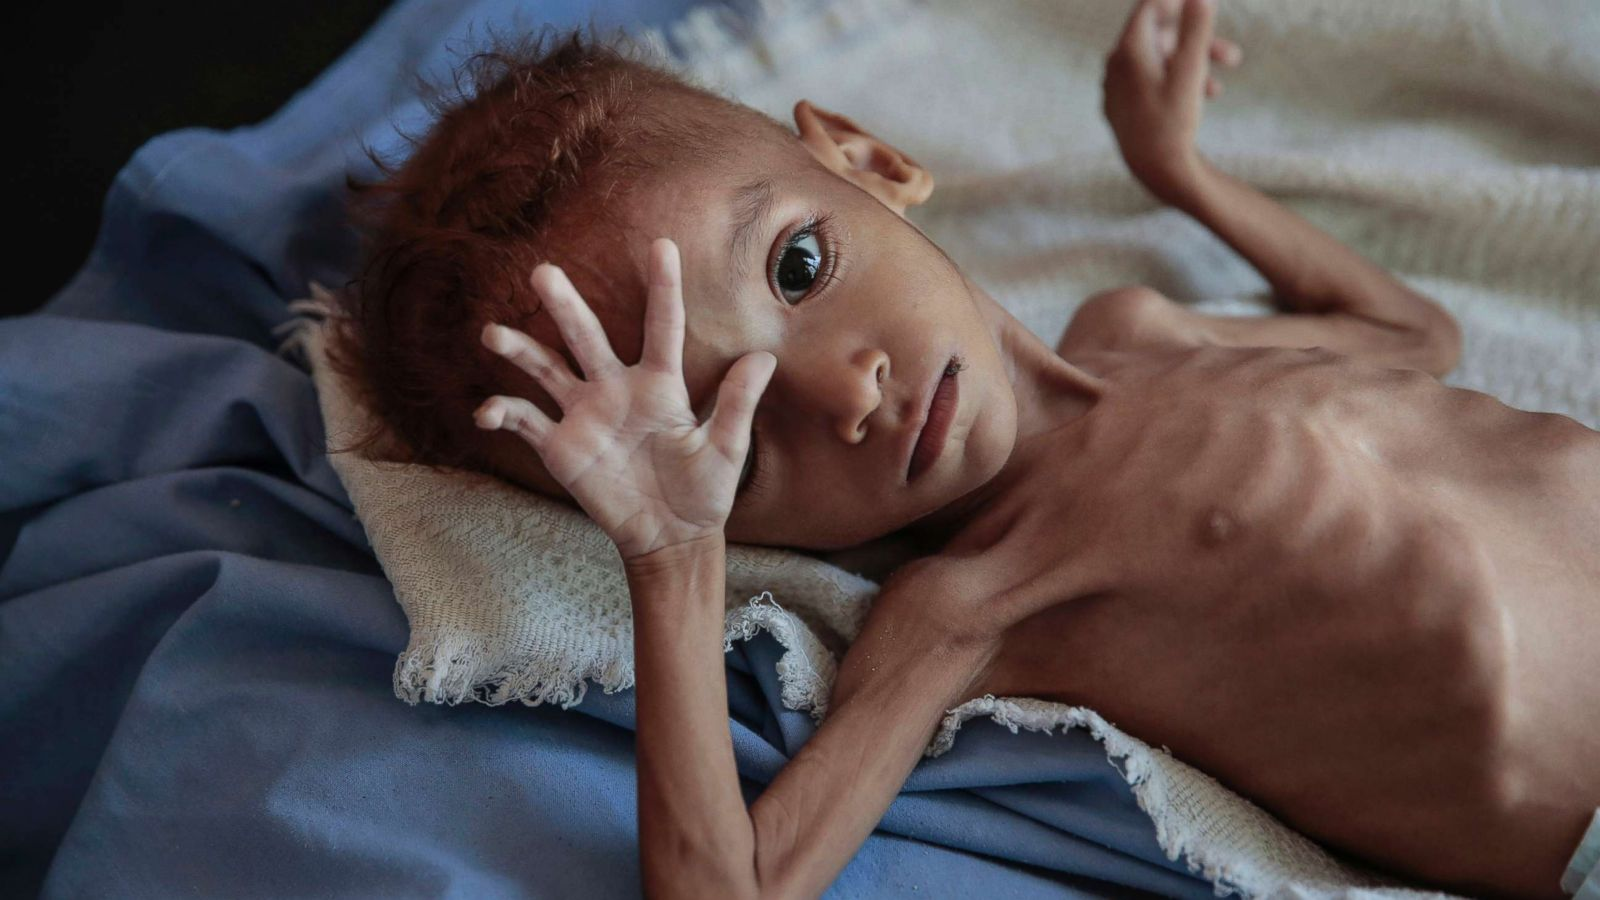 85,000 children in Yemen have starved to death: Save the Children report -  ABC News